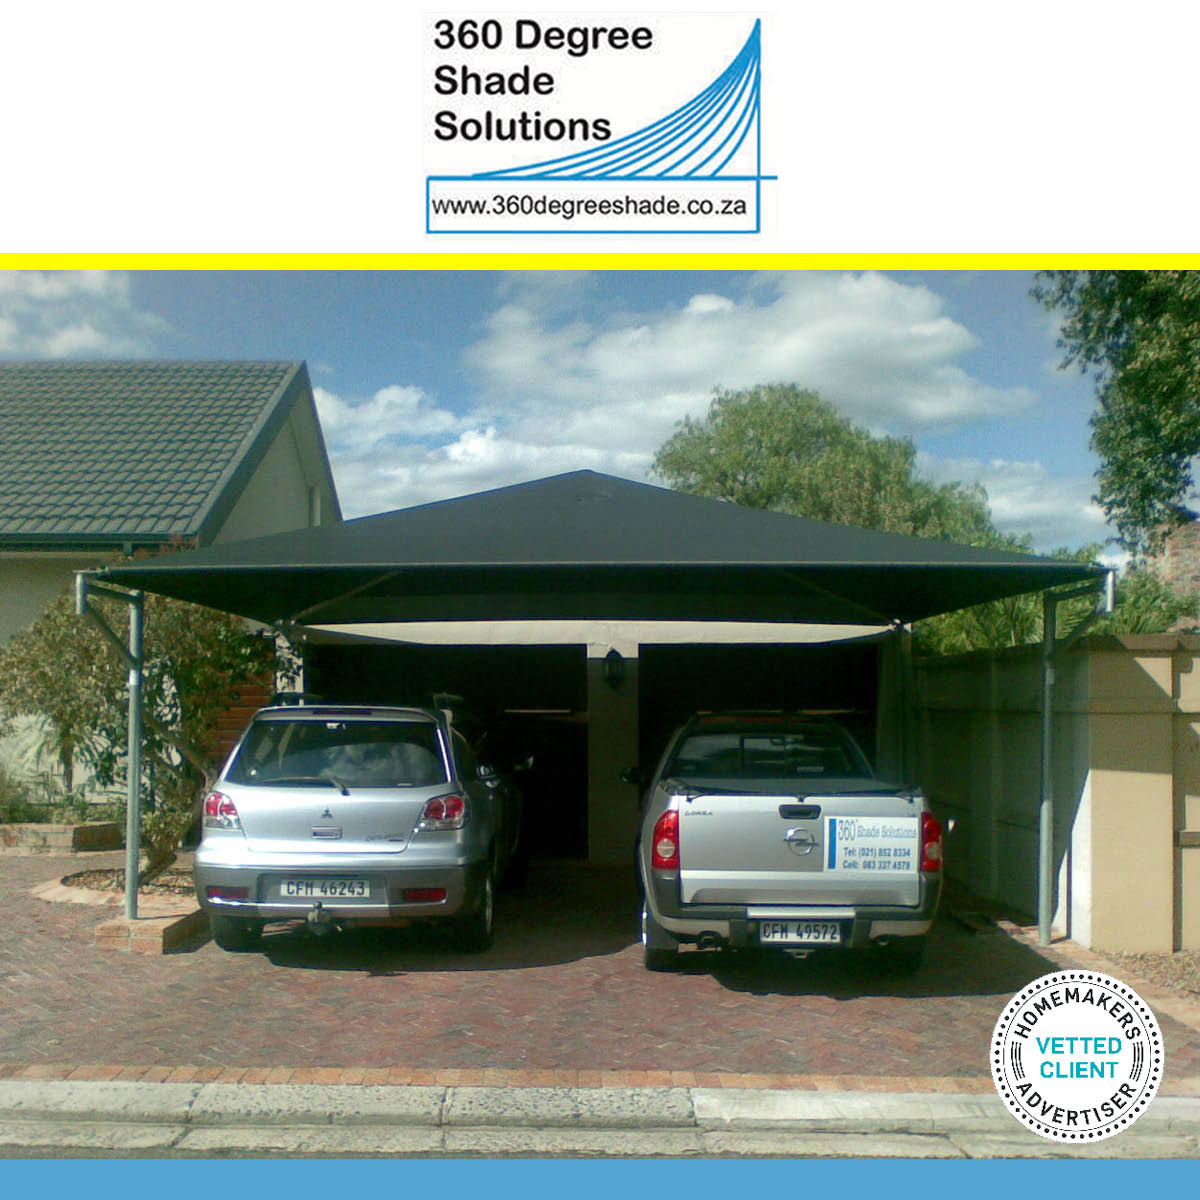 360 degree shade solutions